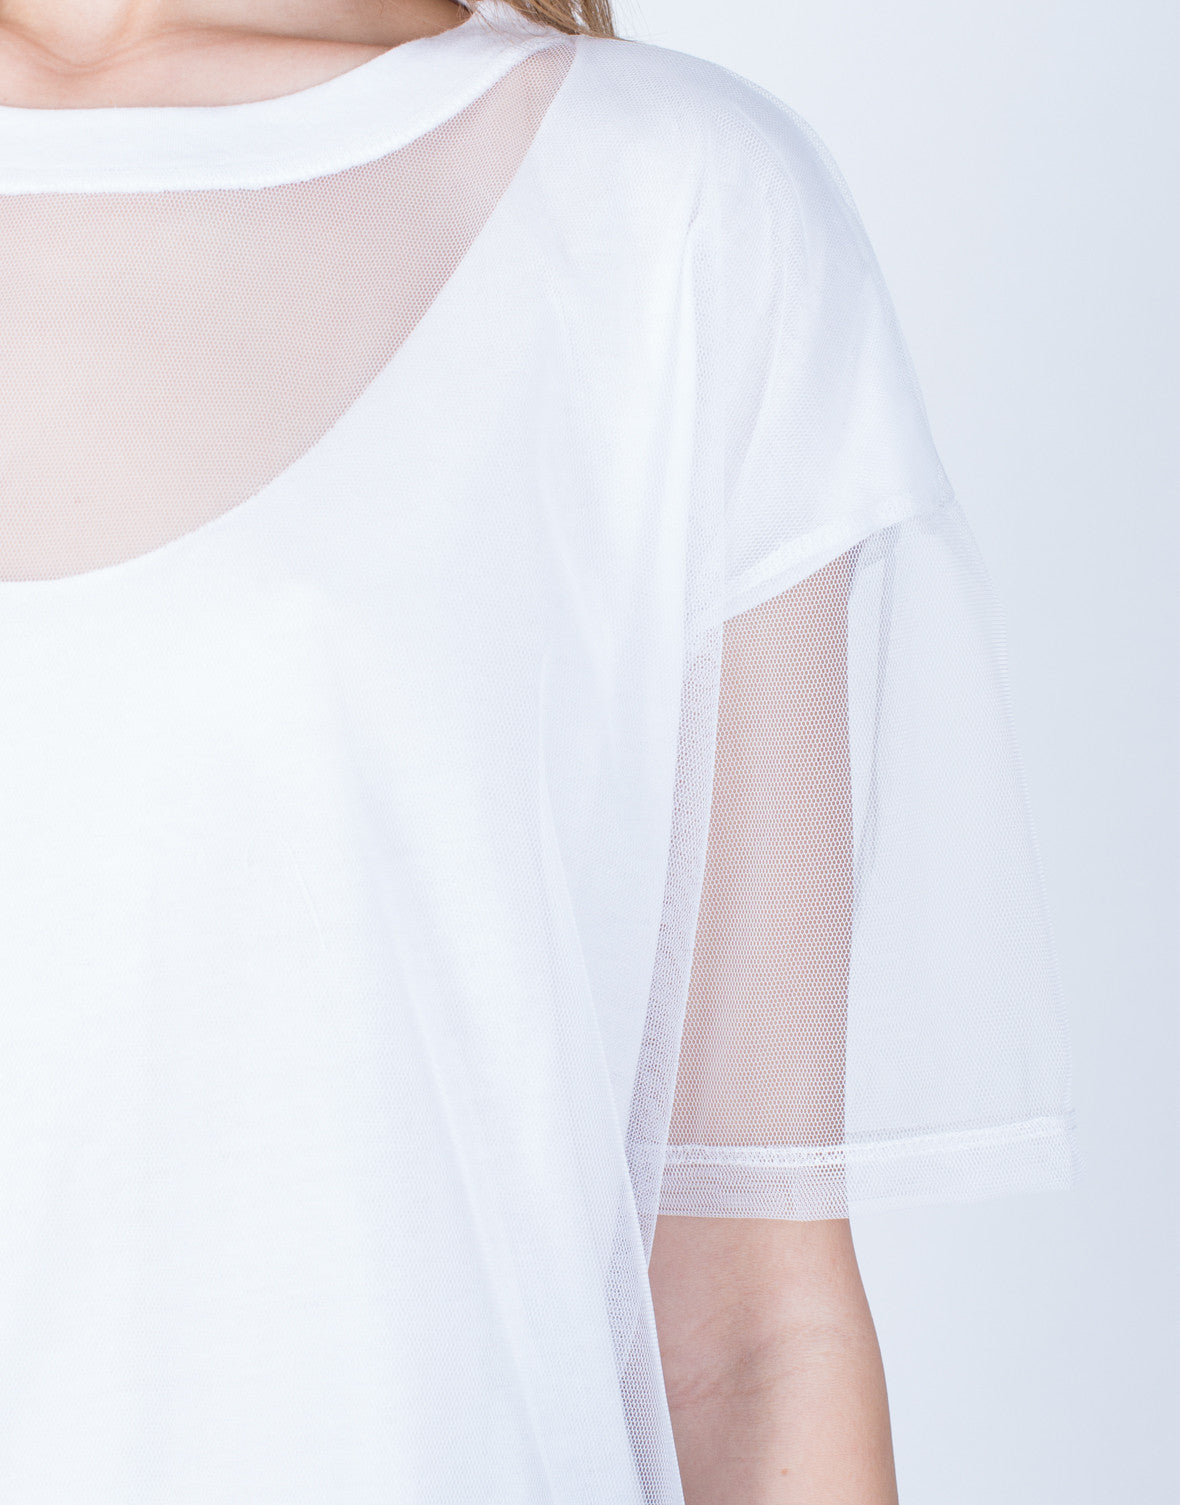 Detail of Oversized Mesh Contrast Tee